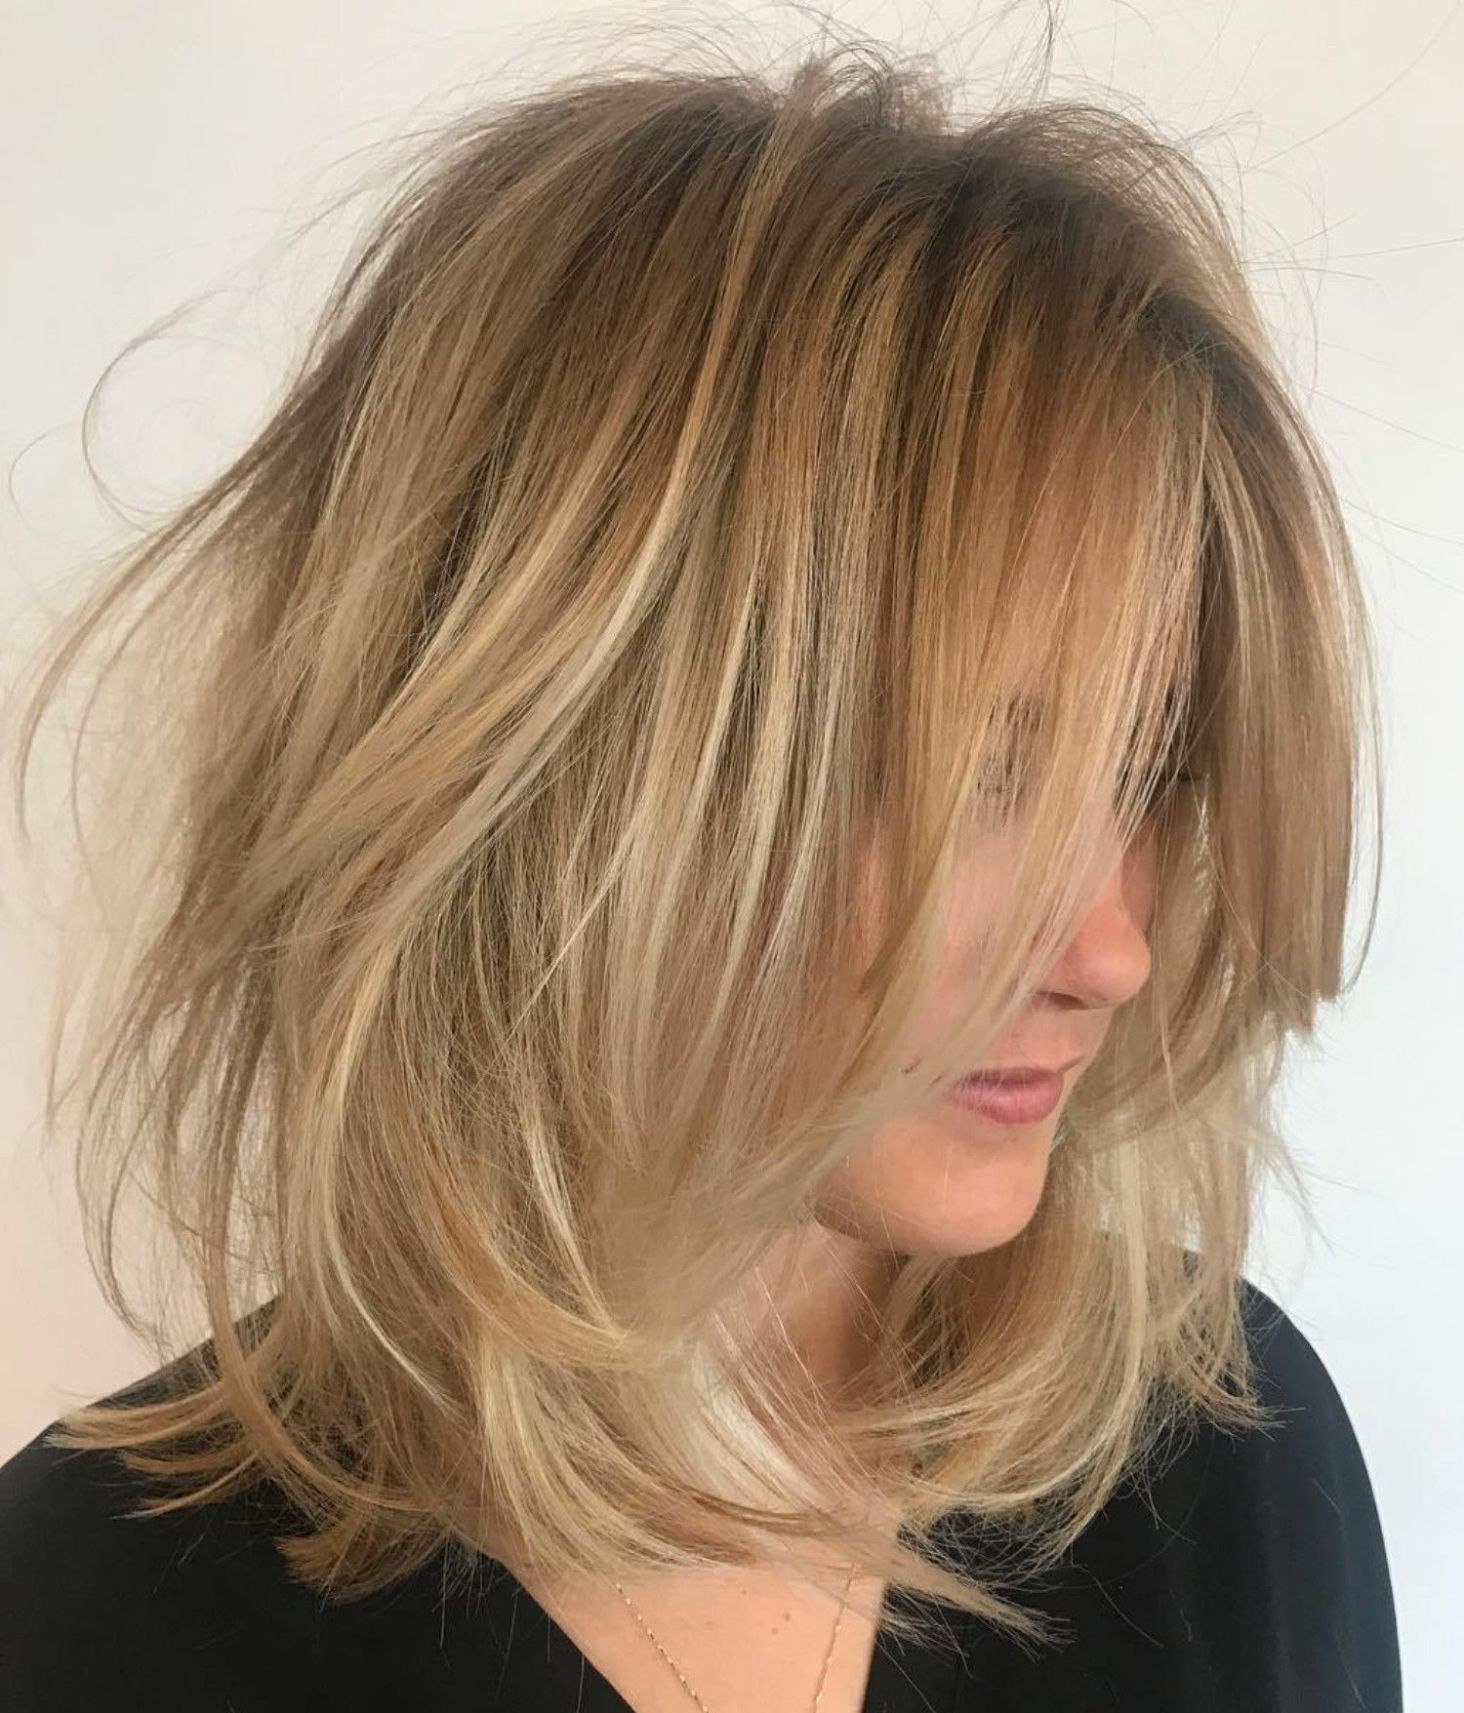 Tousled Blonde Bob Hairstyle Thin Hair Haircuts Hairstyles For Thin Hair Medium Length Hair Styles